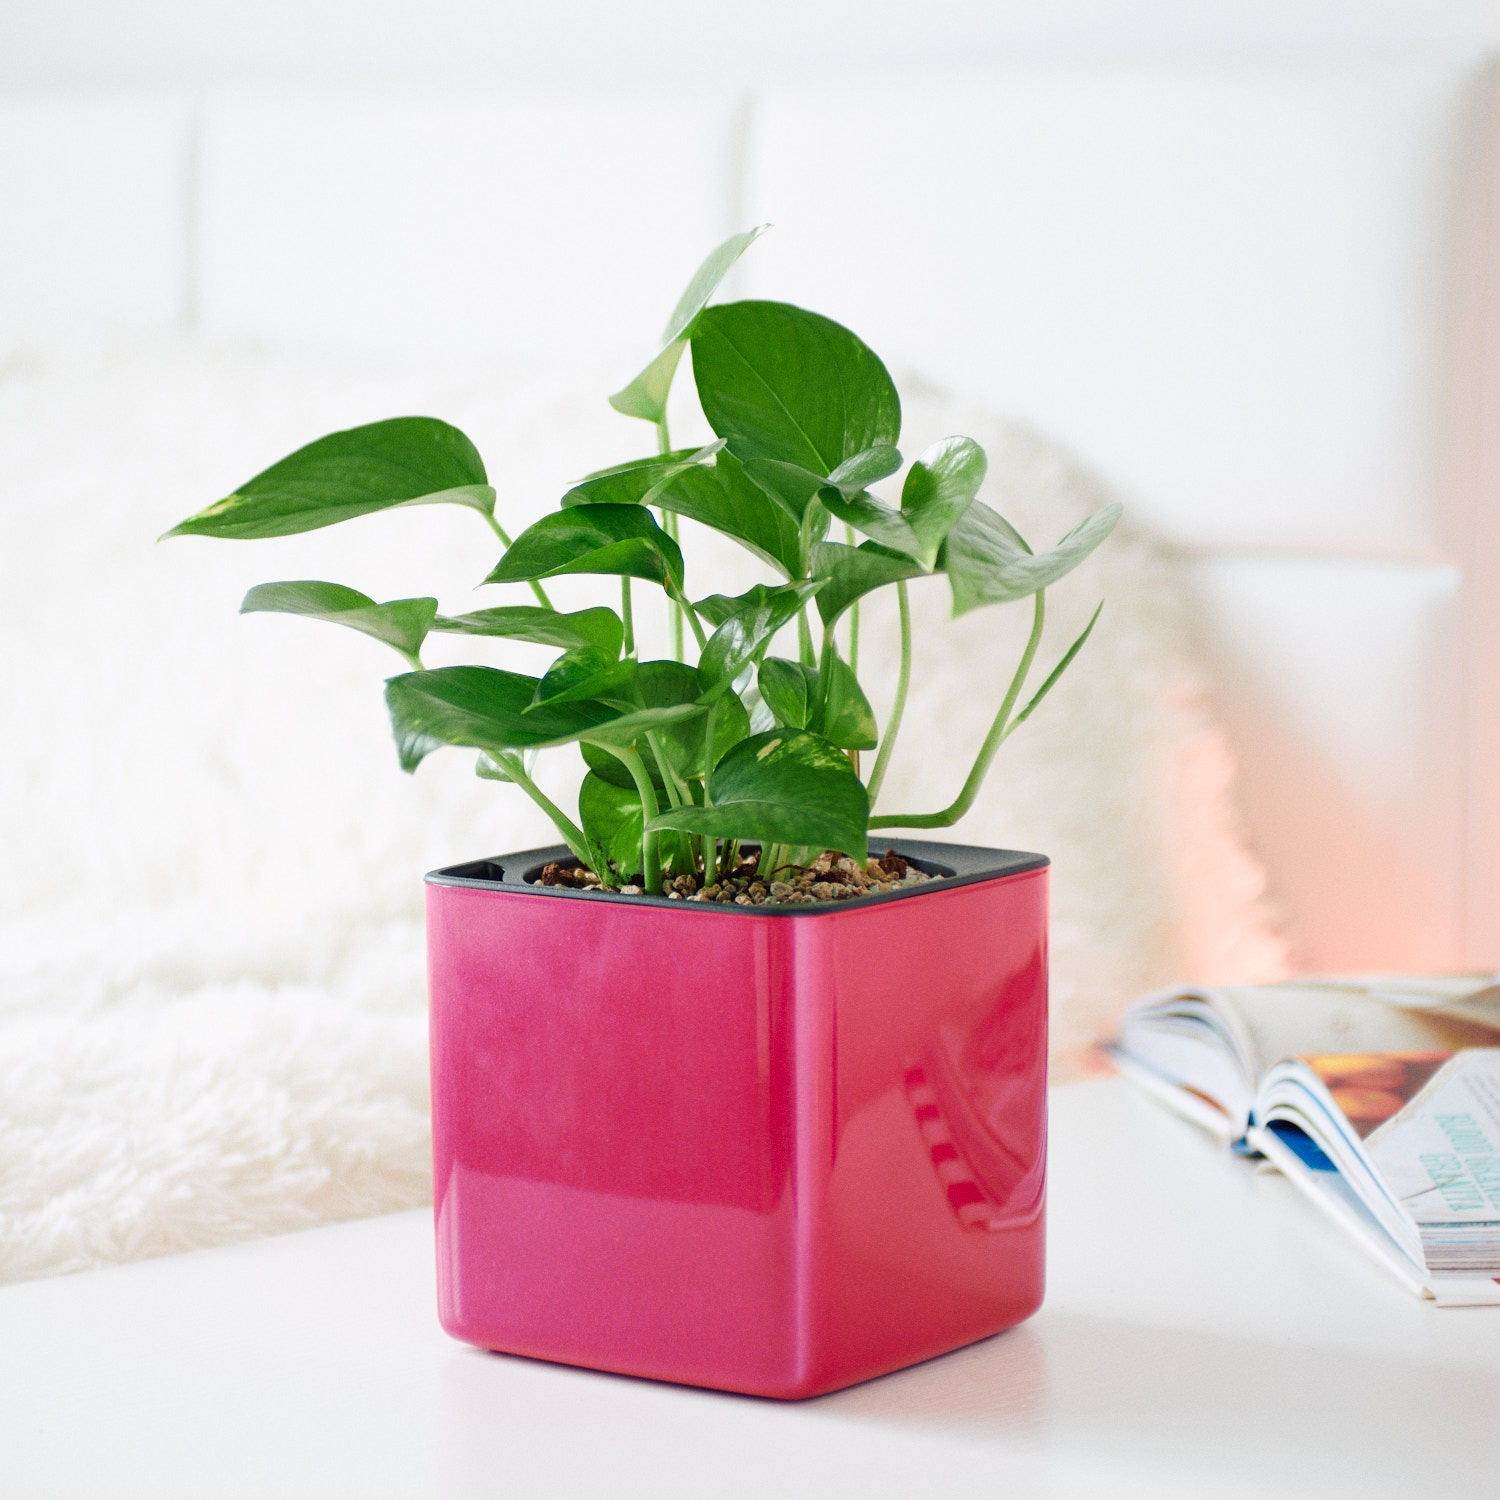 Pothos In Lechuza Cube 14 Glossy Cherry Pie Planter | My City Plants